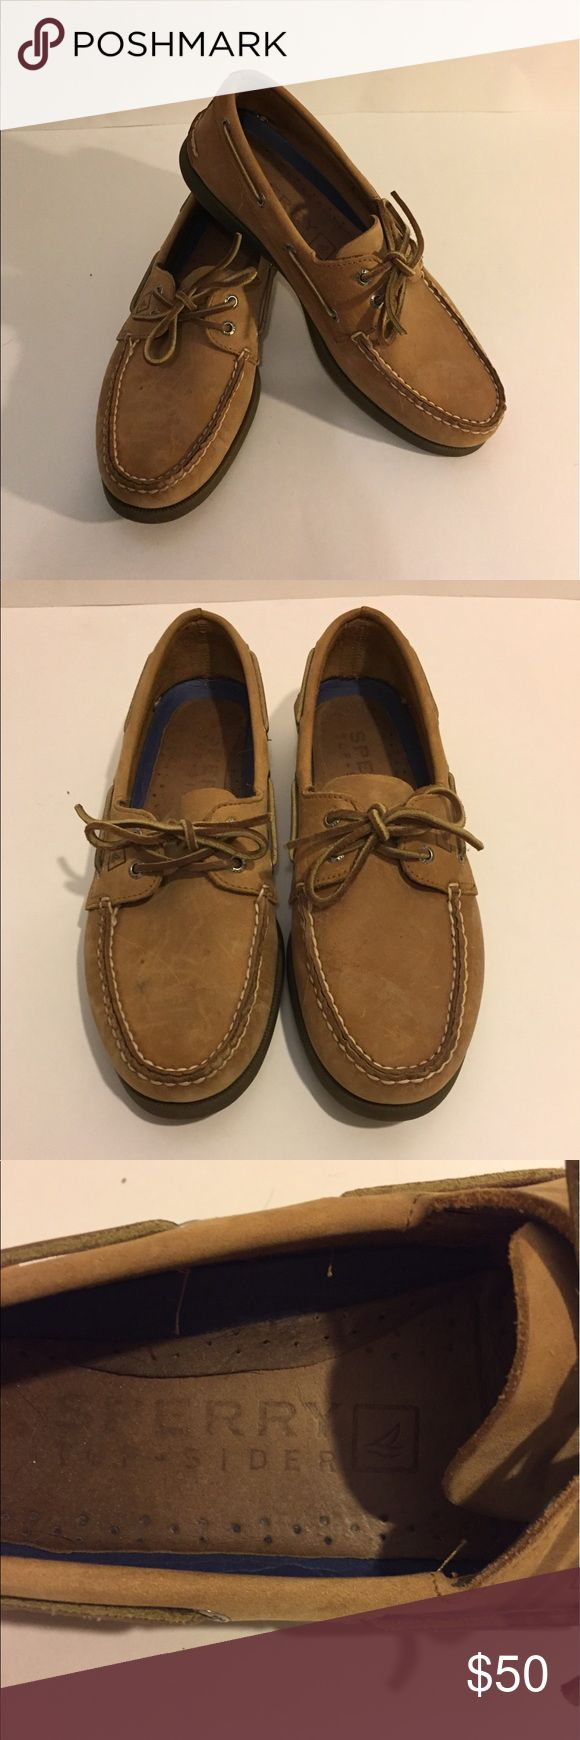 Sperry Topsiders Authentic Orginal 2-eye boatshoe VGUC. Size ten, some superficial scuffs, can be removed with shoecare. Sperry Top-Sider Shoes Boat Shoes